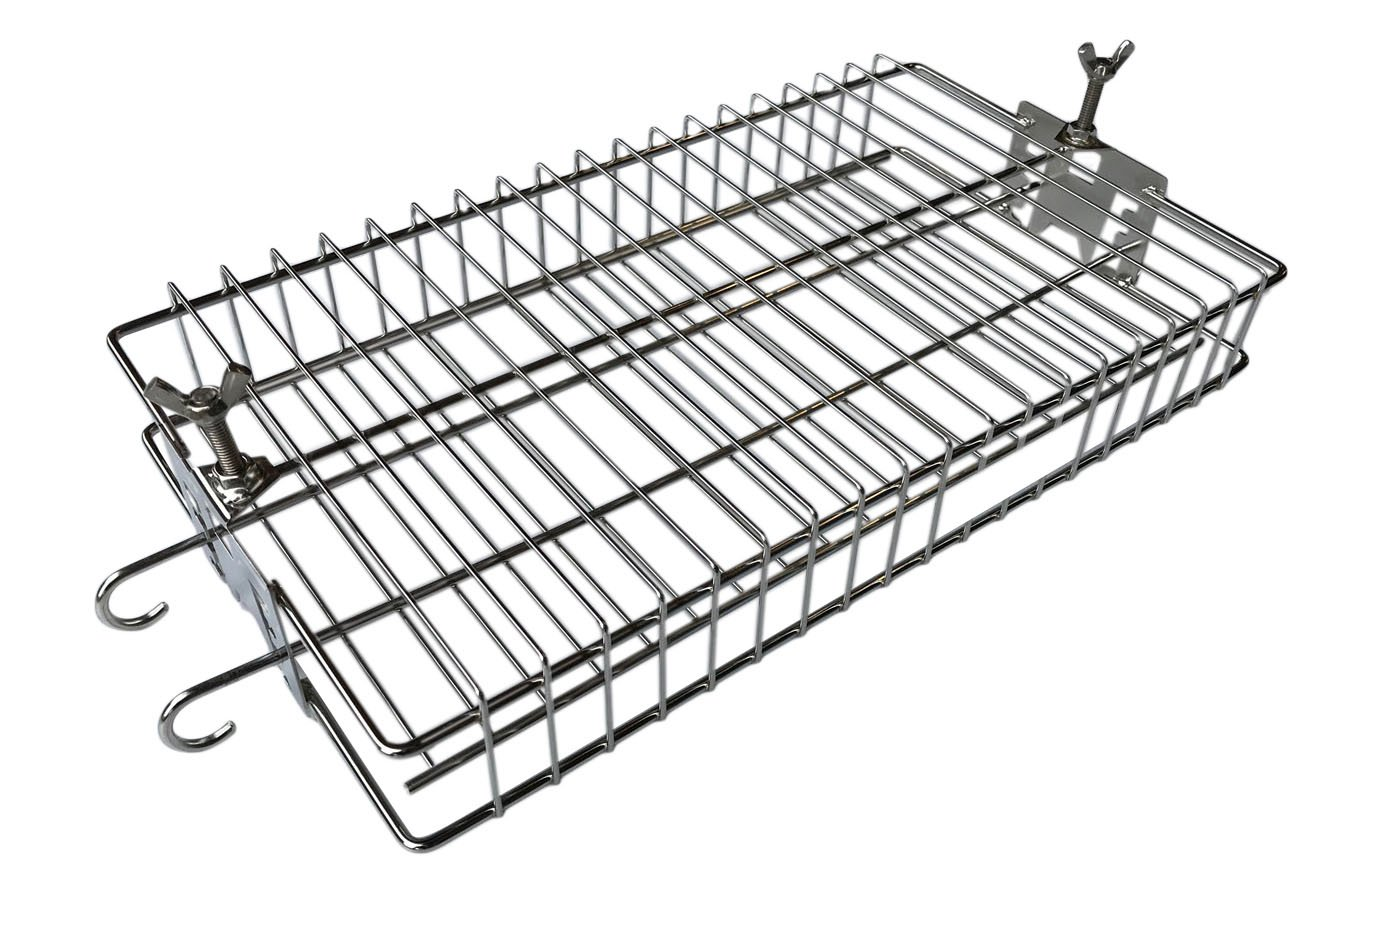 BBQ Rotisserie Basket Cage in Stainless Steel Sunshine BBQs Ltd